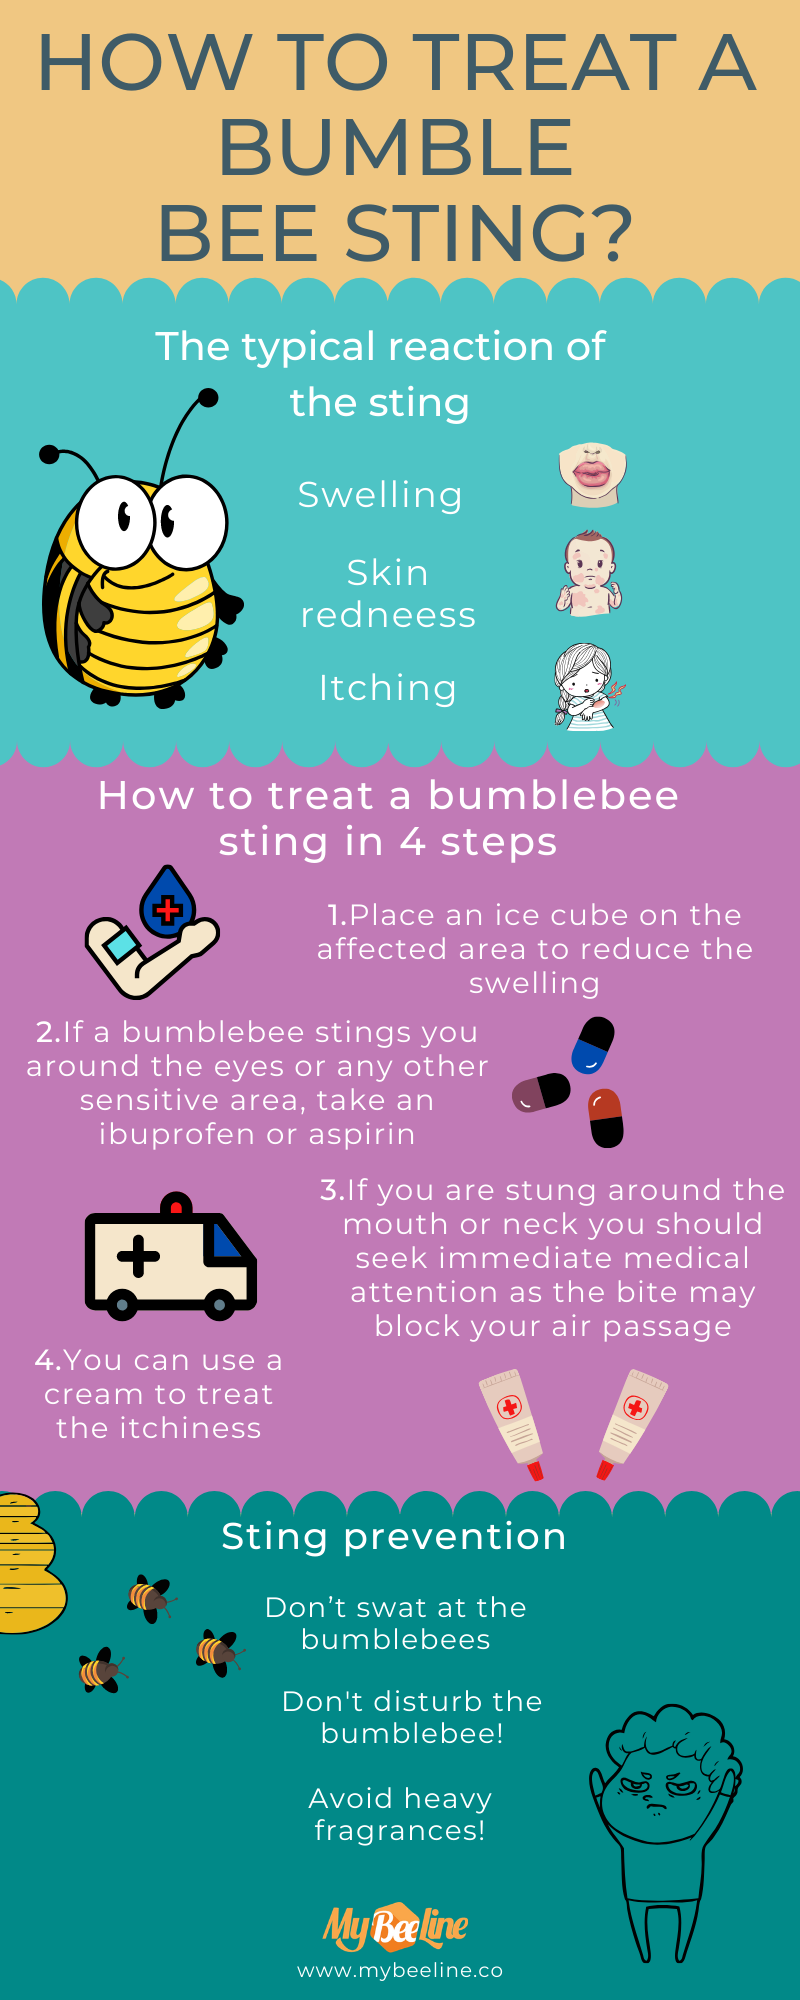 how to treat a bumblee bee sting